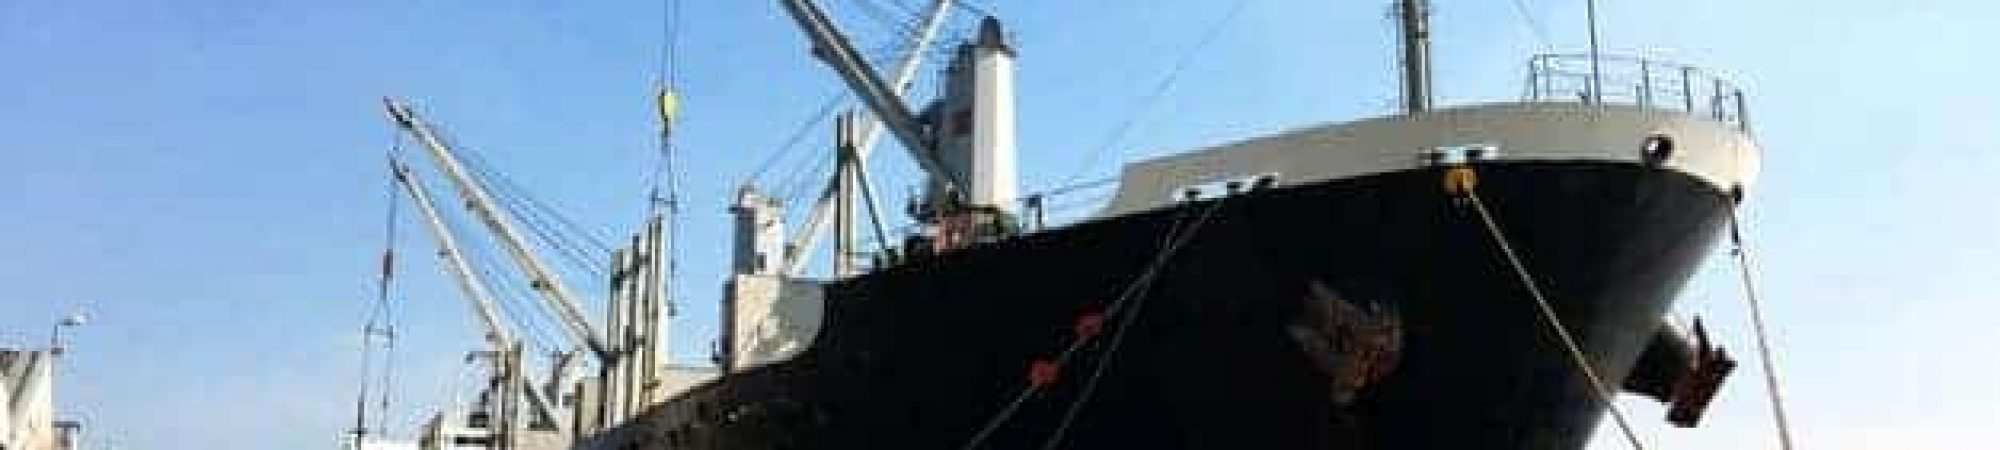 industrial-container-cargo-freight-ship-habor-logistic-import-export_35752-1827